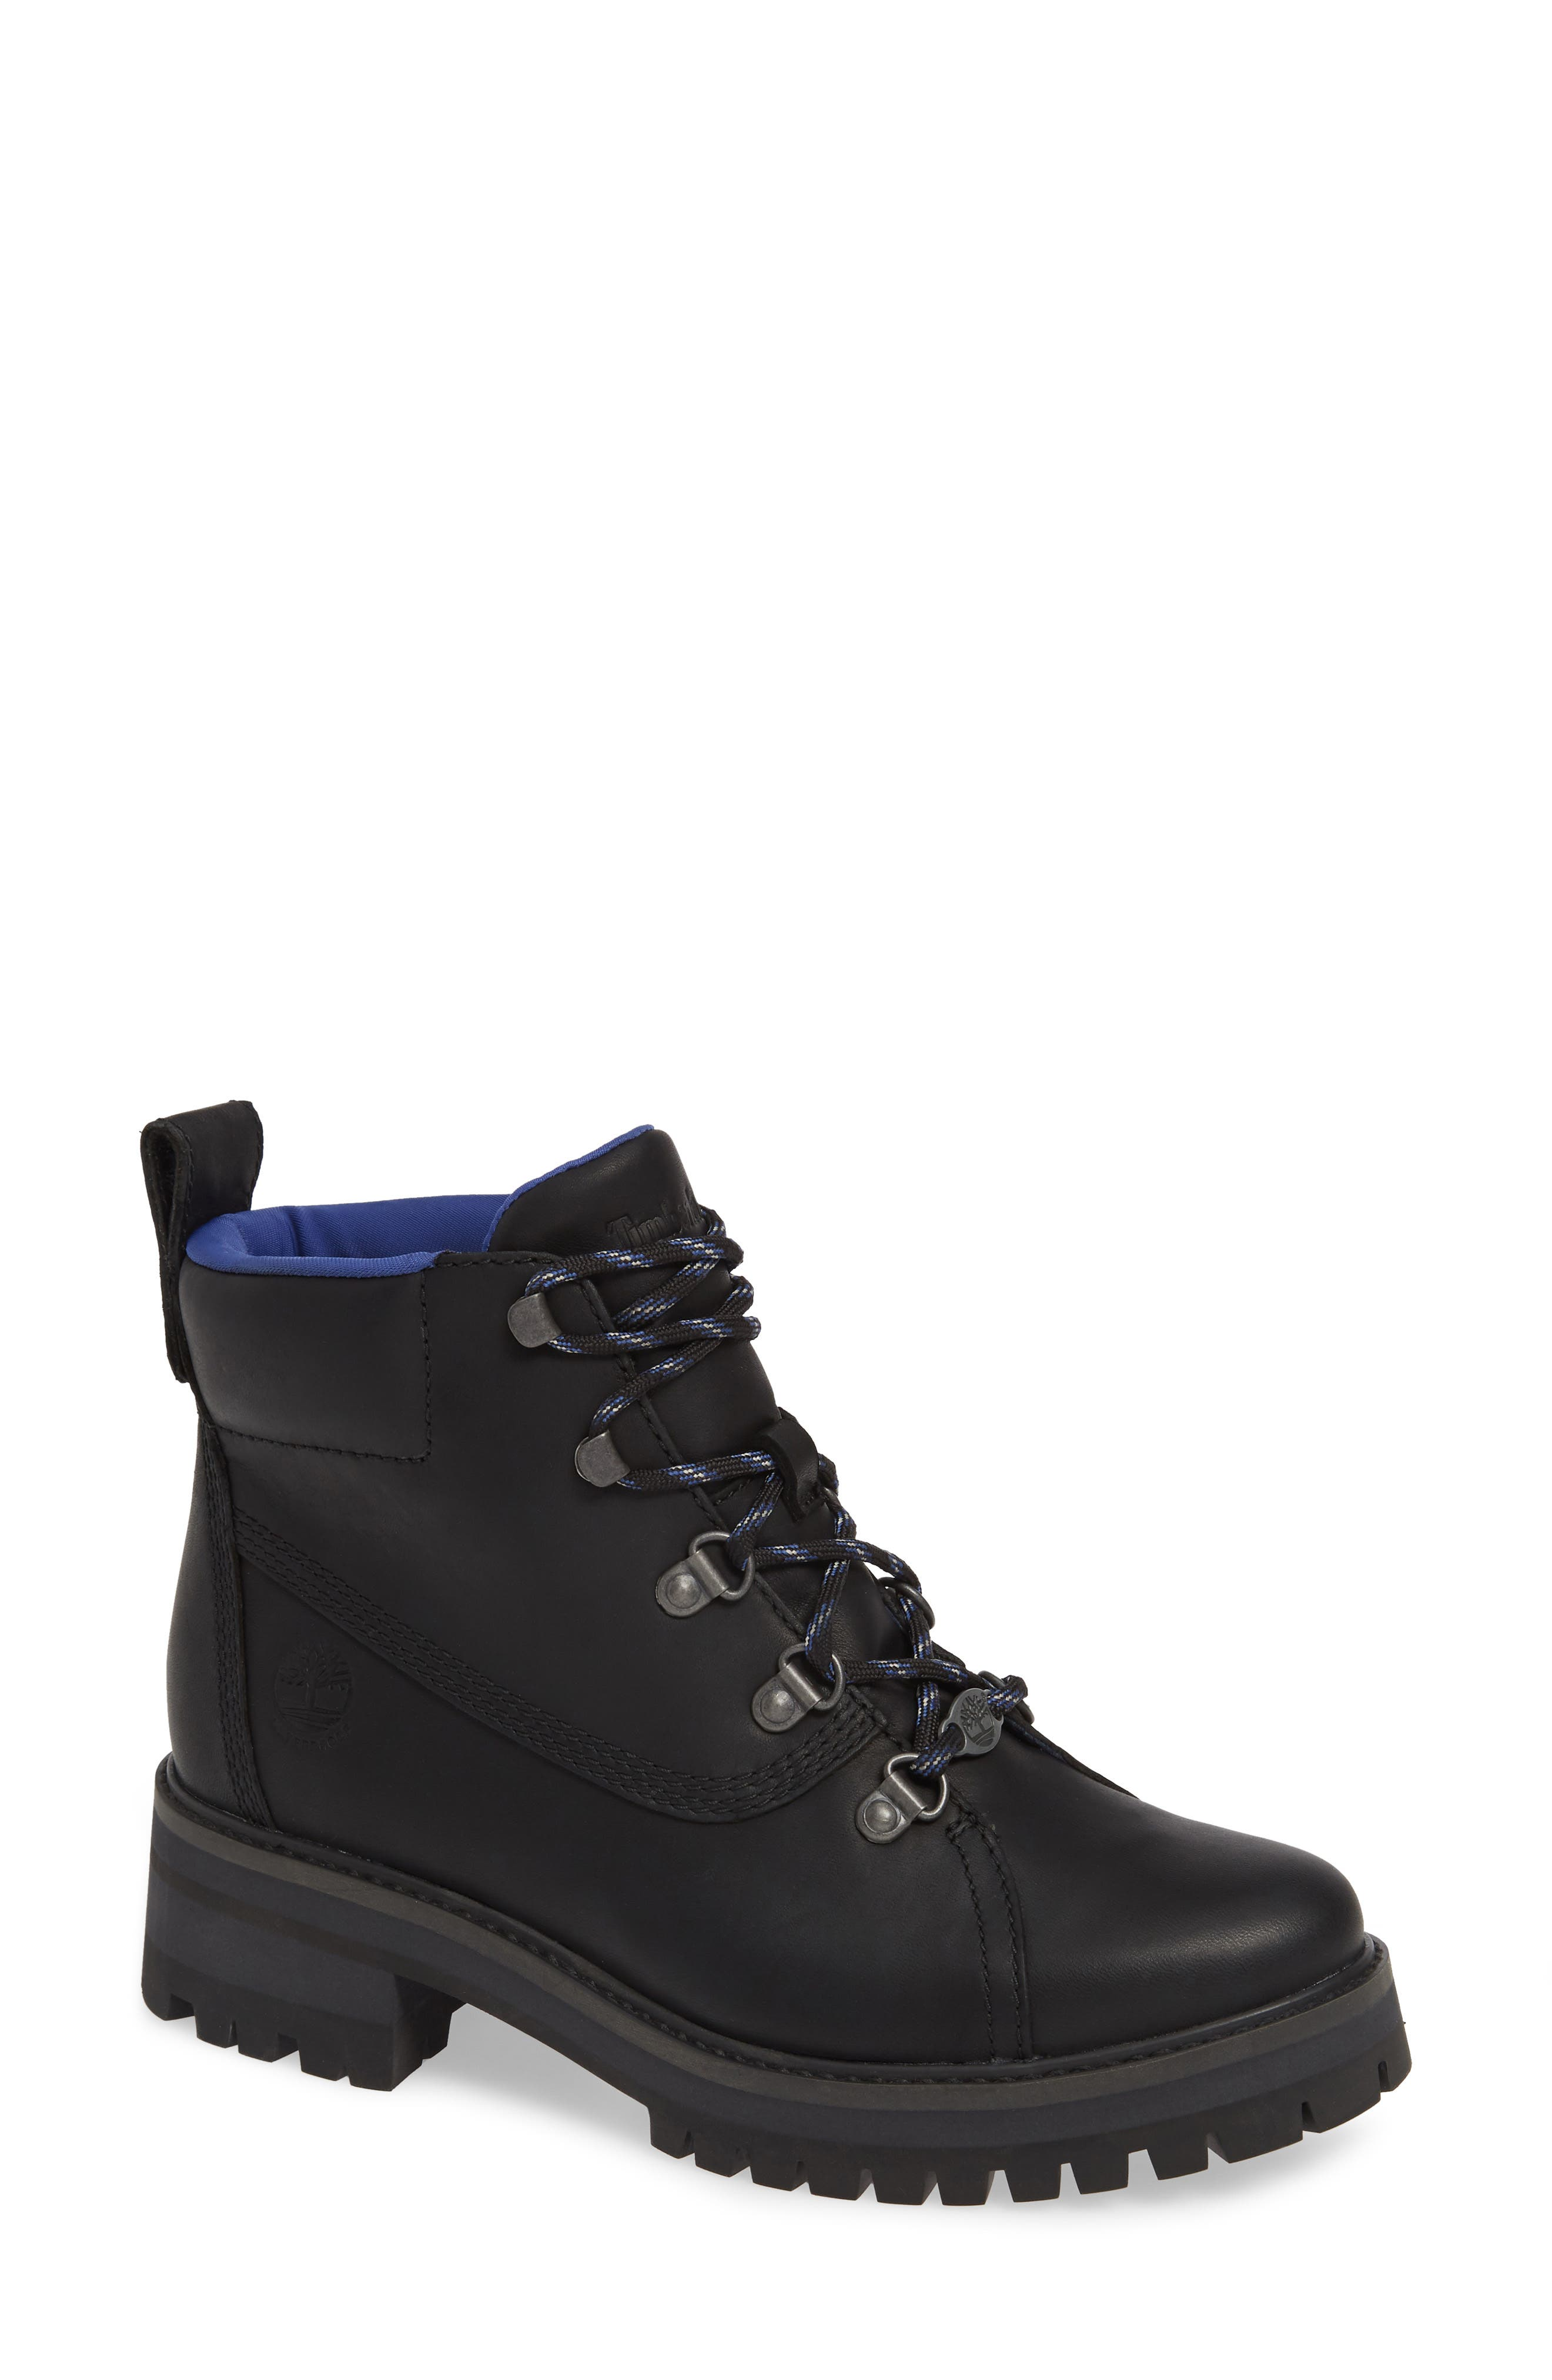 TIMBERLAND Courmayeur Valley Waterproof Hiking Boot, Main, color, BLACK NUBUCK BLACK OUT LEATHER